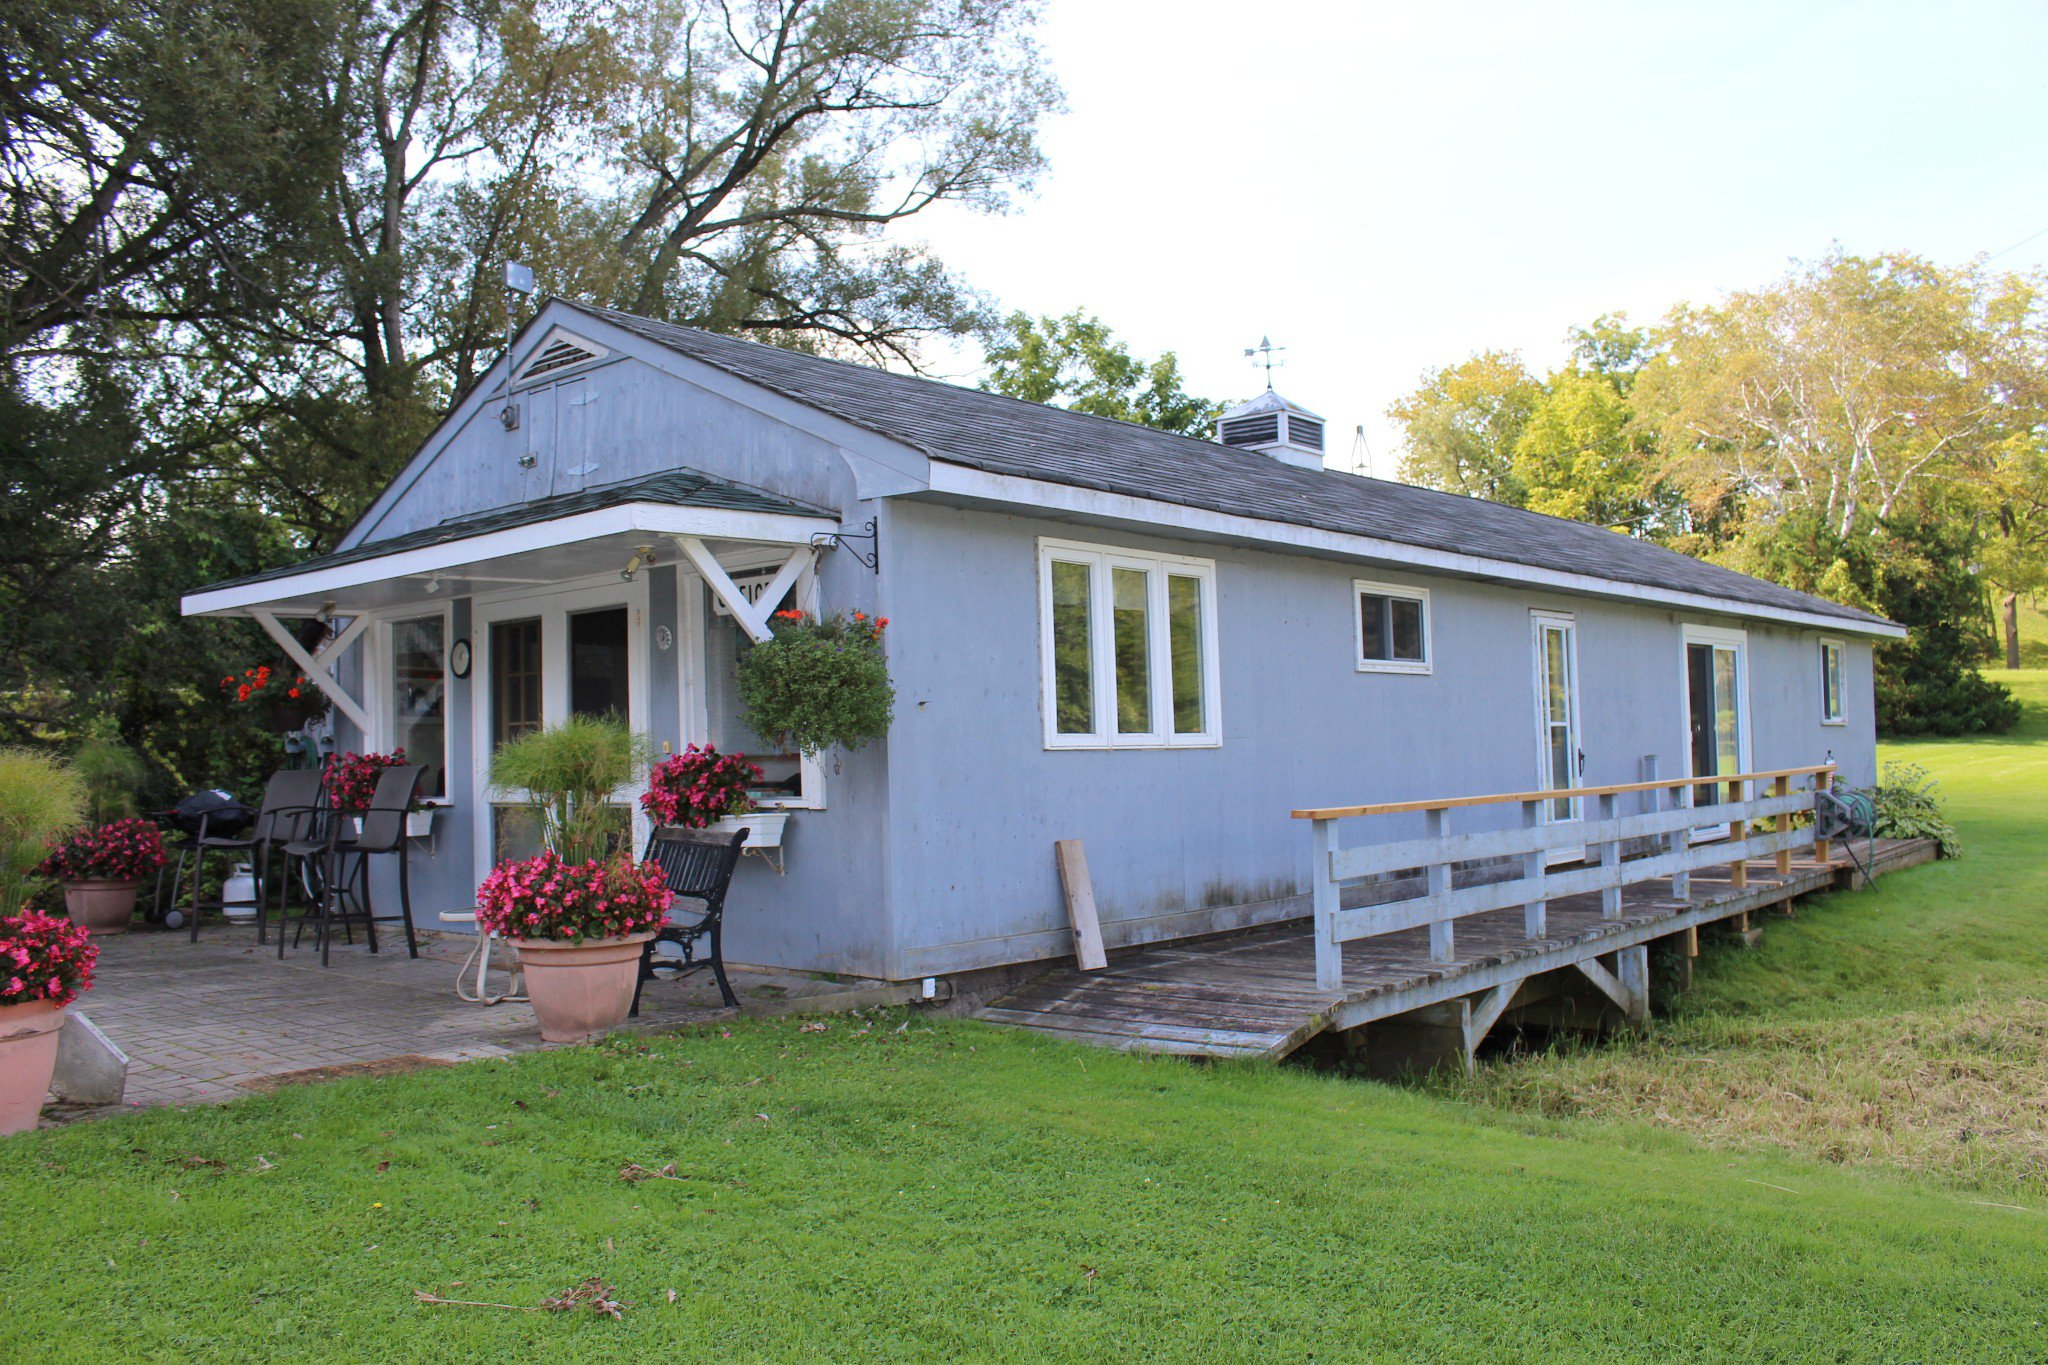 Photo 30: Photos: 6010 Rice Lake Scenic Drive in Harwood: Other for sale : MLS®# 223405